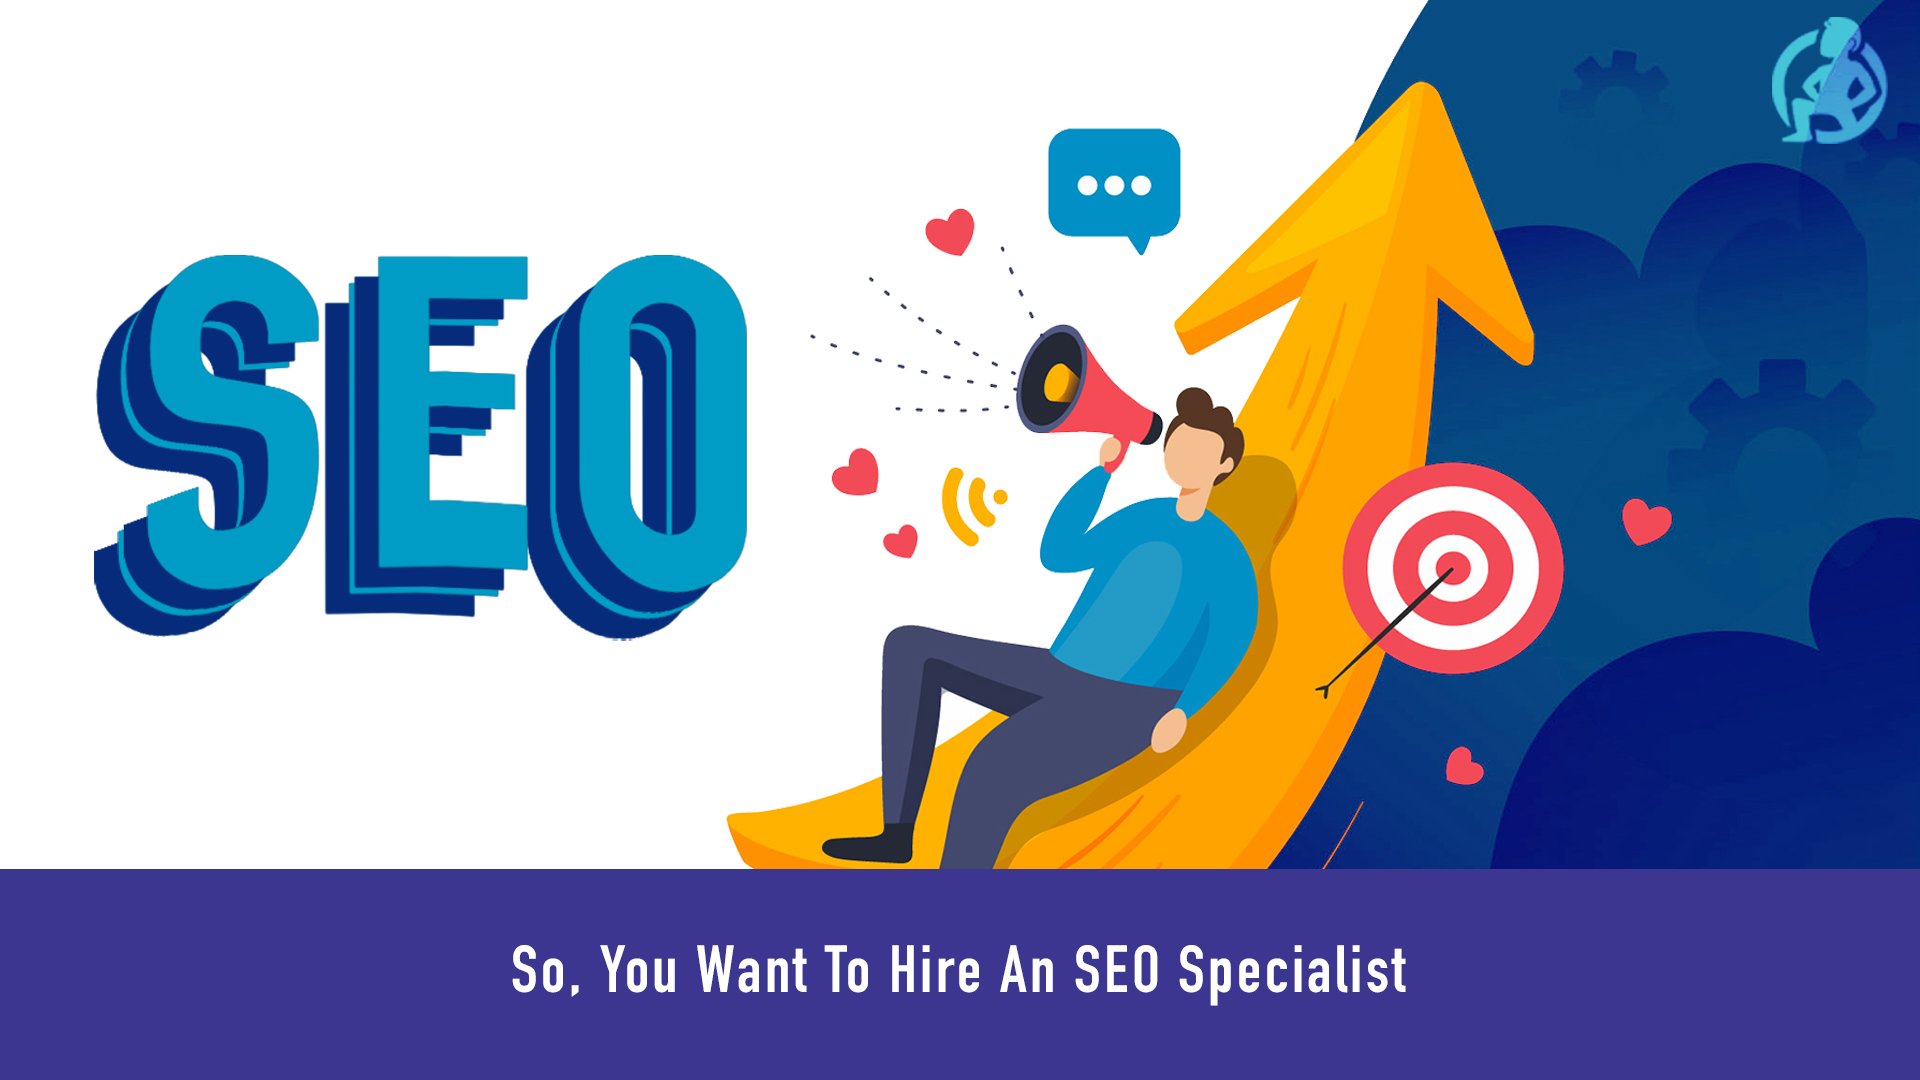 413 So, You Want To Hire An SEO Specialist - Feature